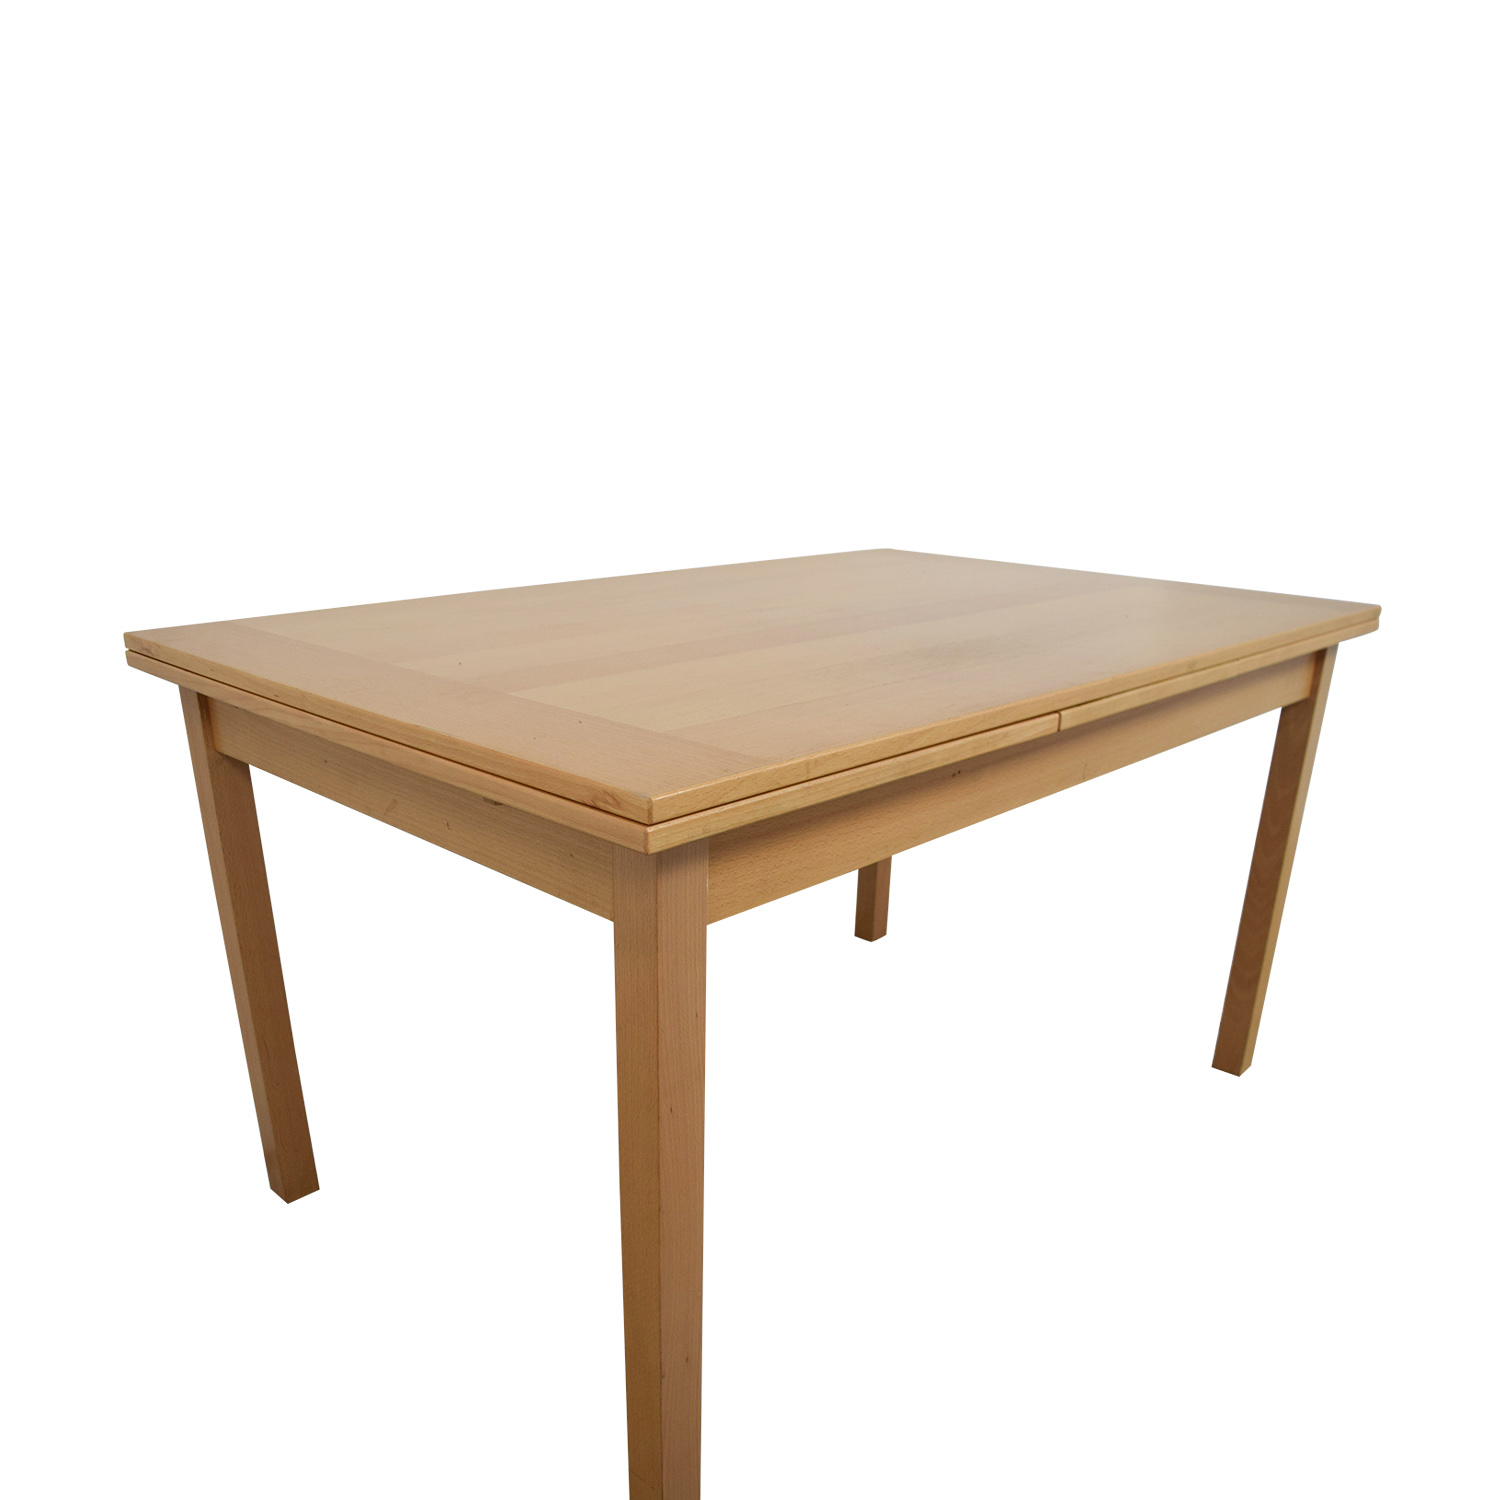 buy online 072a1 59d26 77% OFF - Workbench Workbench Extendable Pull-Out Dining Table / Tables